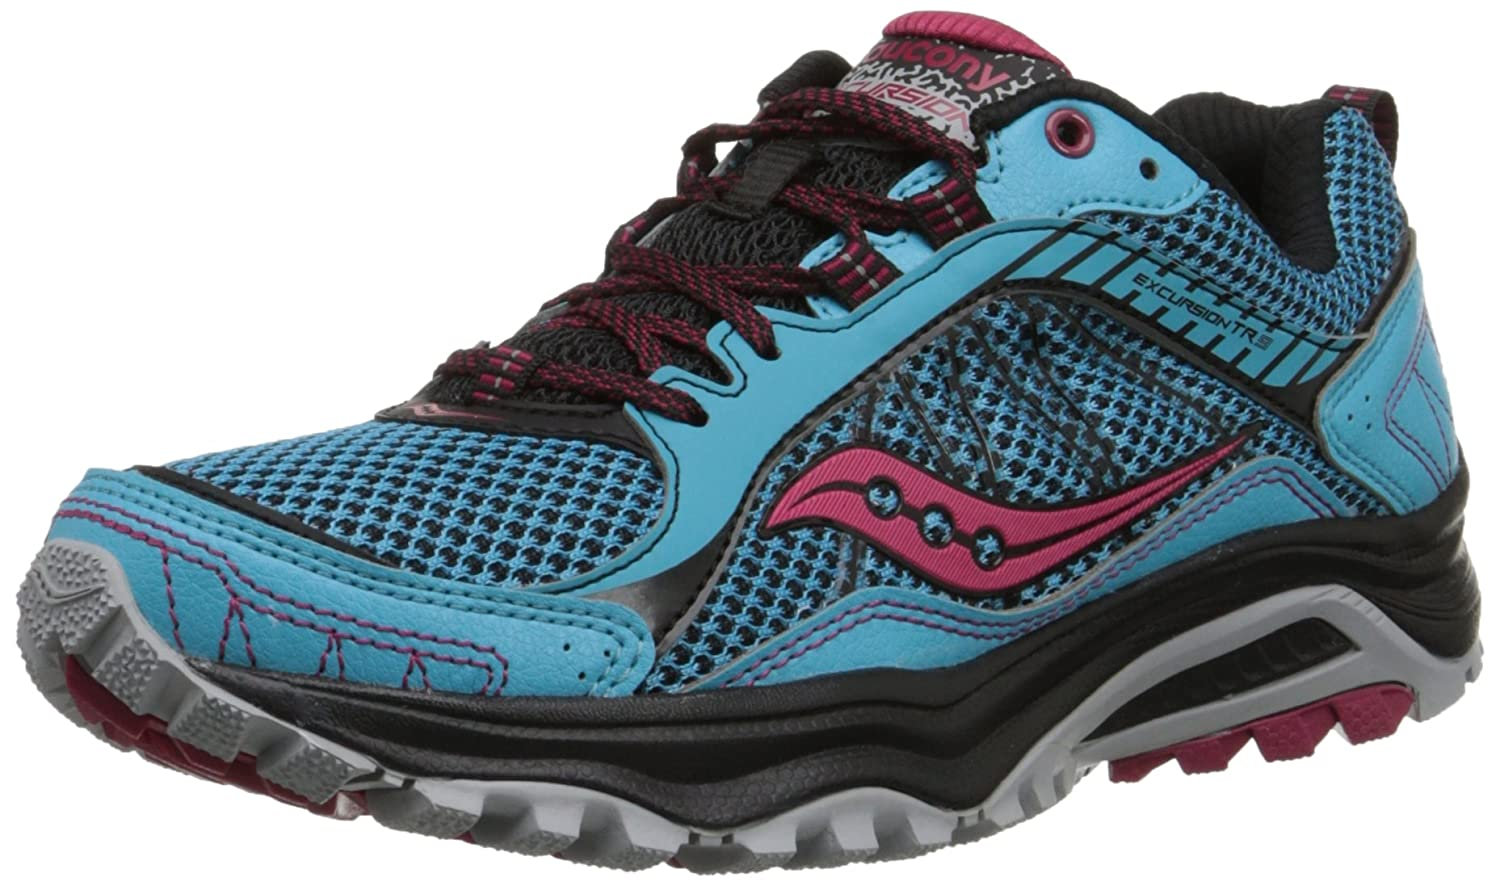 Saucony Women's Grid Excursion TR9 Trail Running Shoe B00RMCOE0G 6 B(M) US|Blue/Black/Red